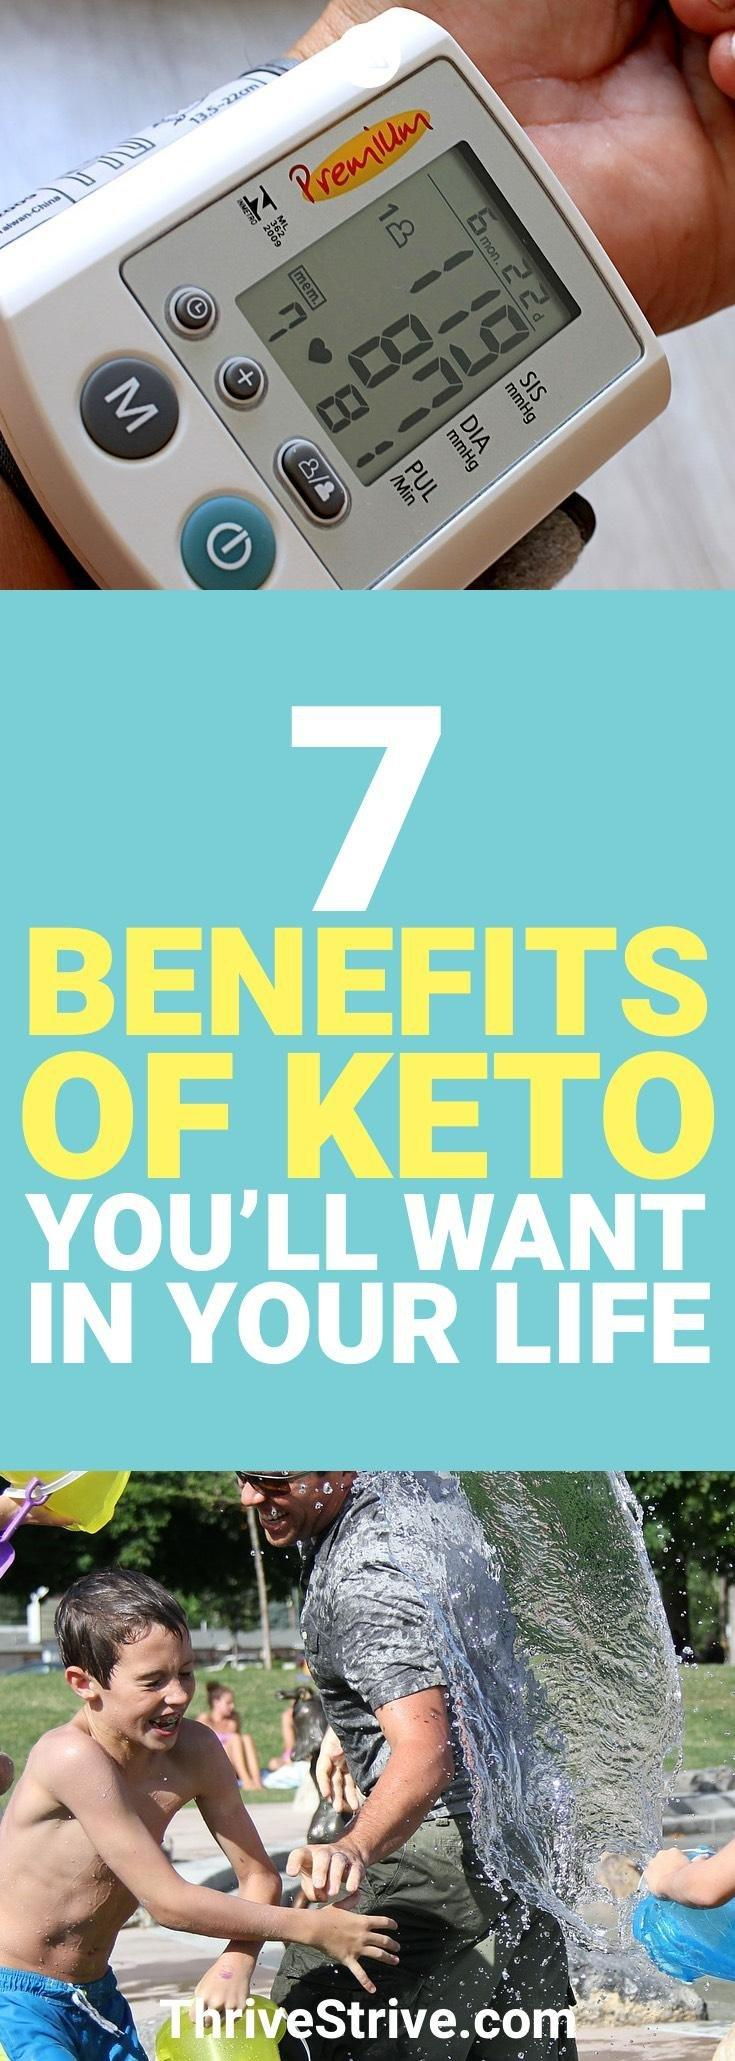 7 Benefits Of A Keto Diet That You'll Want In Your Life